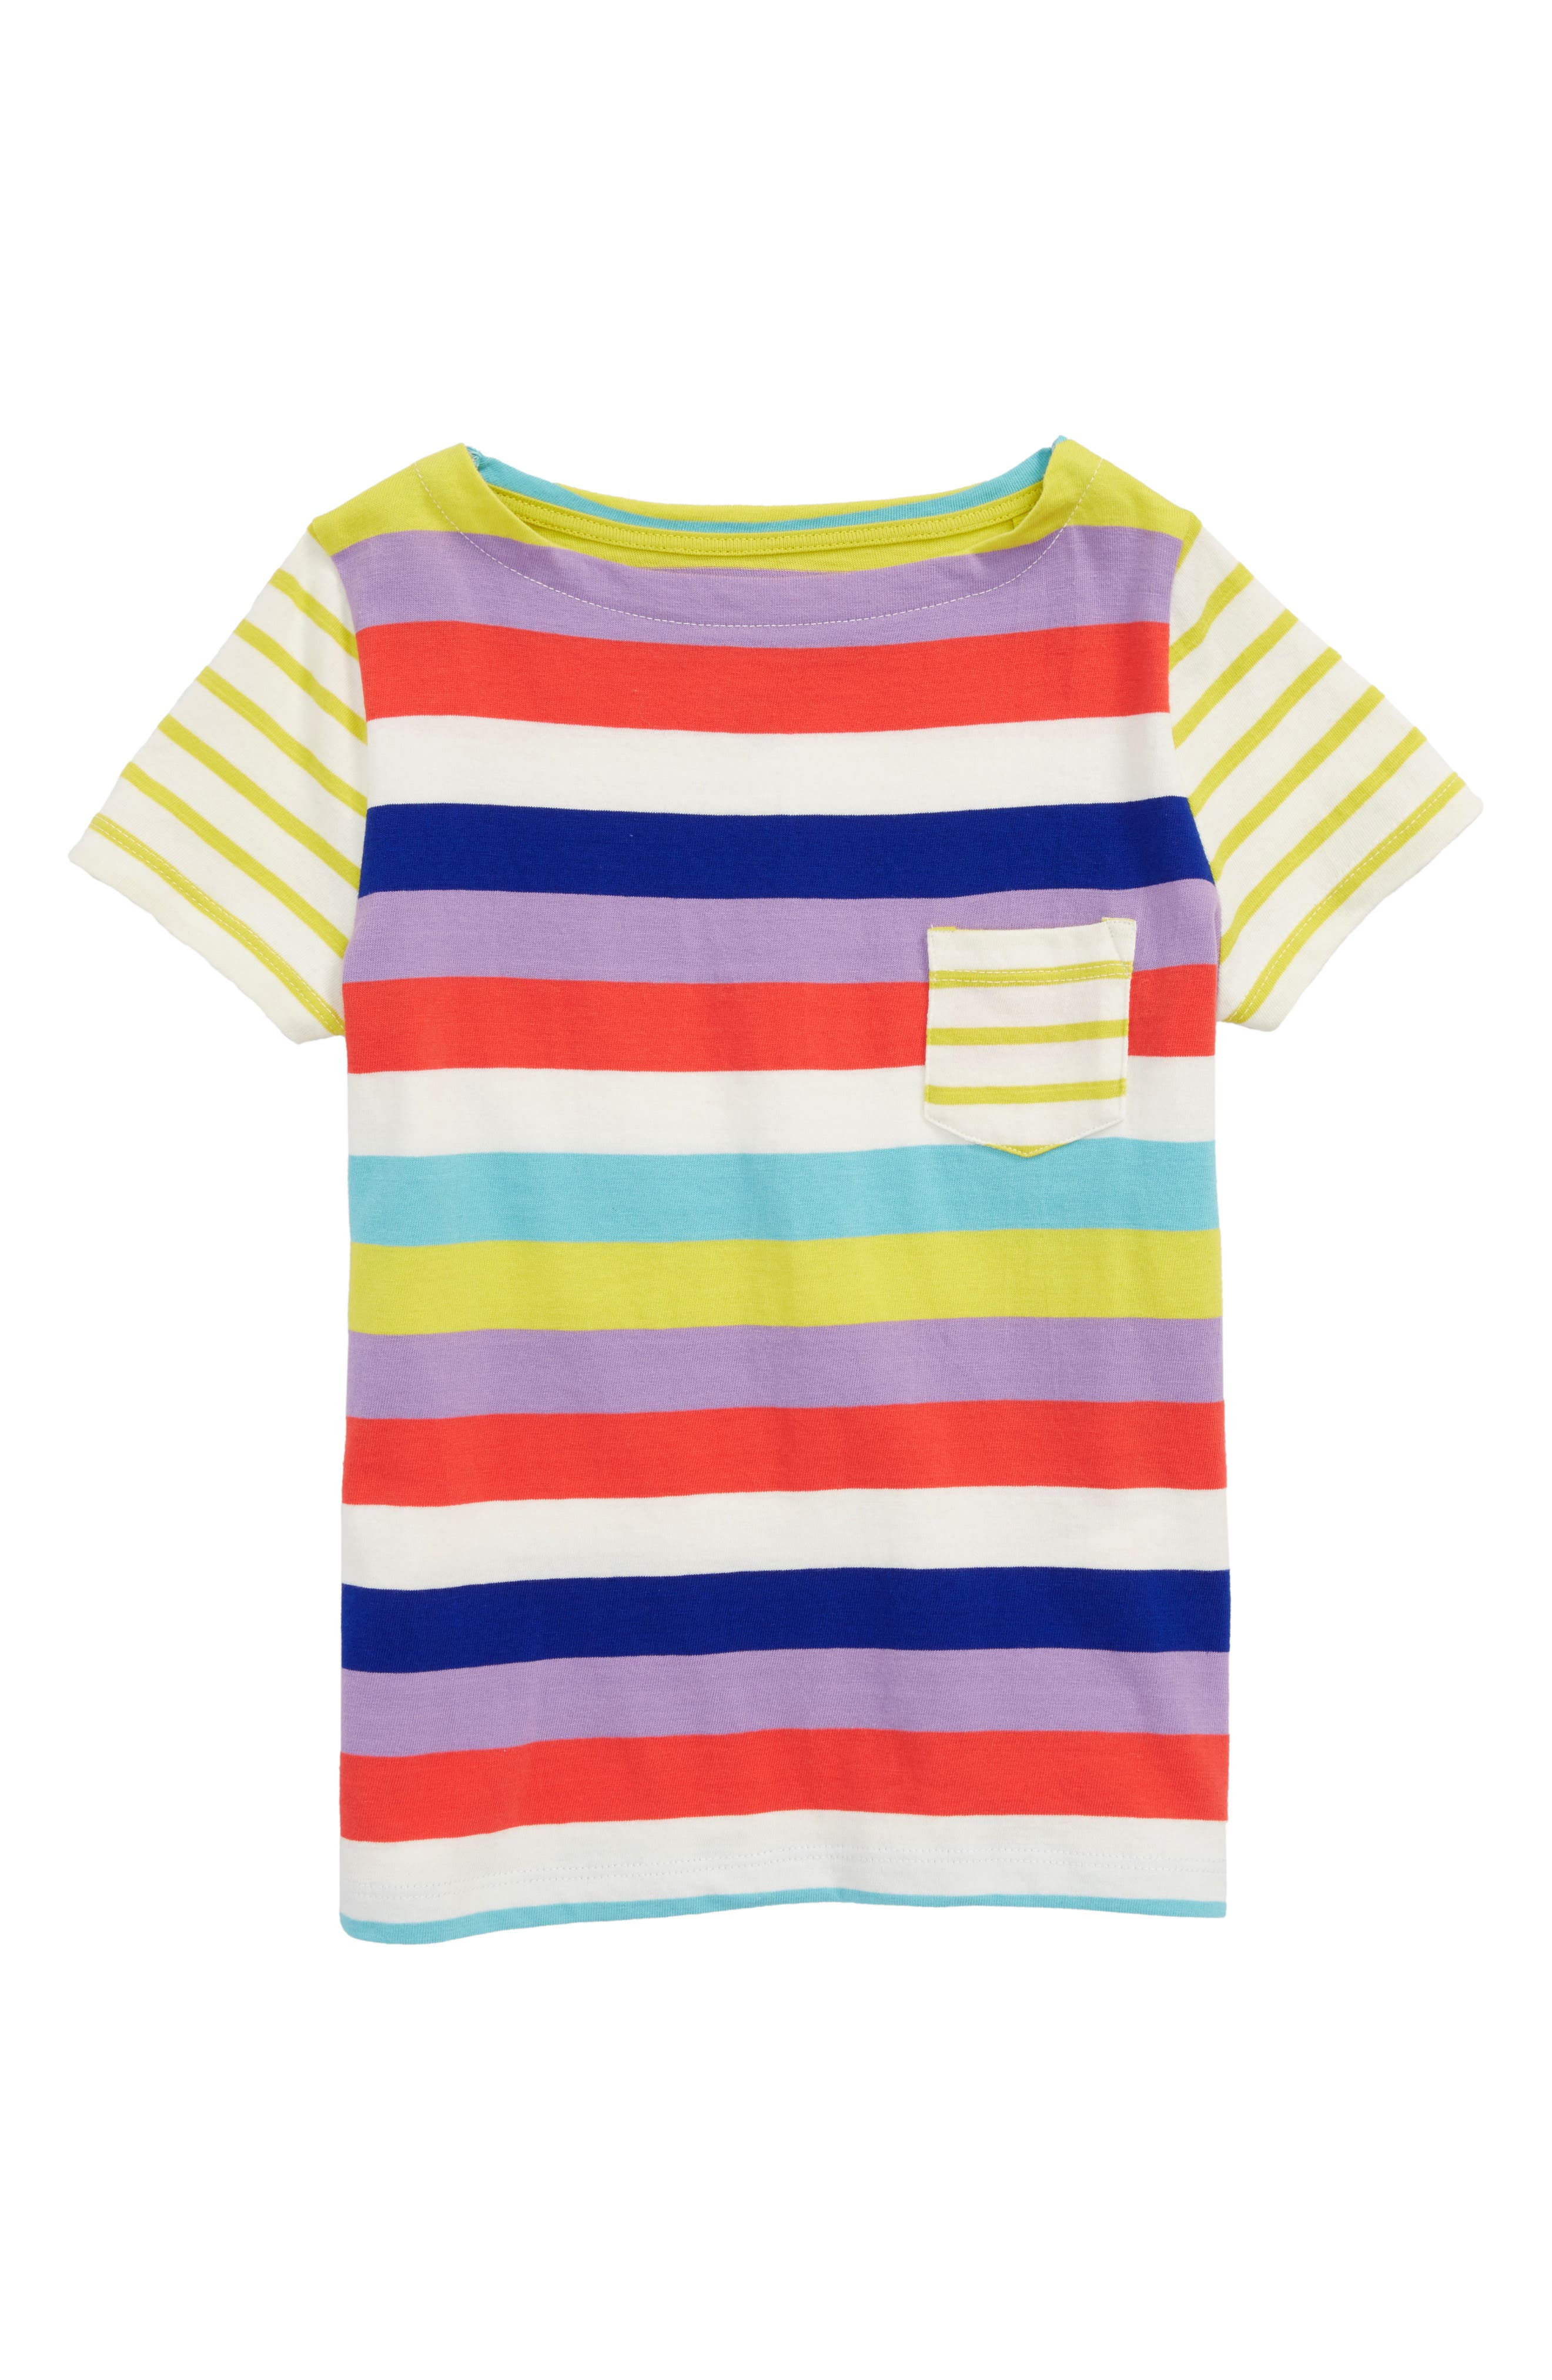 Summer Hotchpotch Tee,                             Main thumbnail 1, color,                             Candy Stripe Str